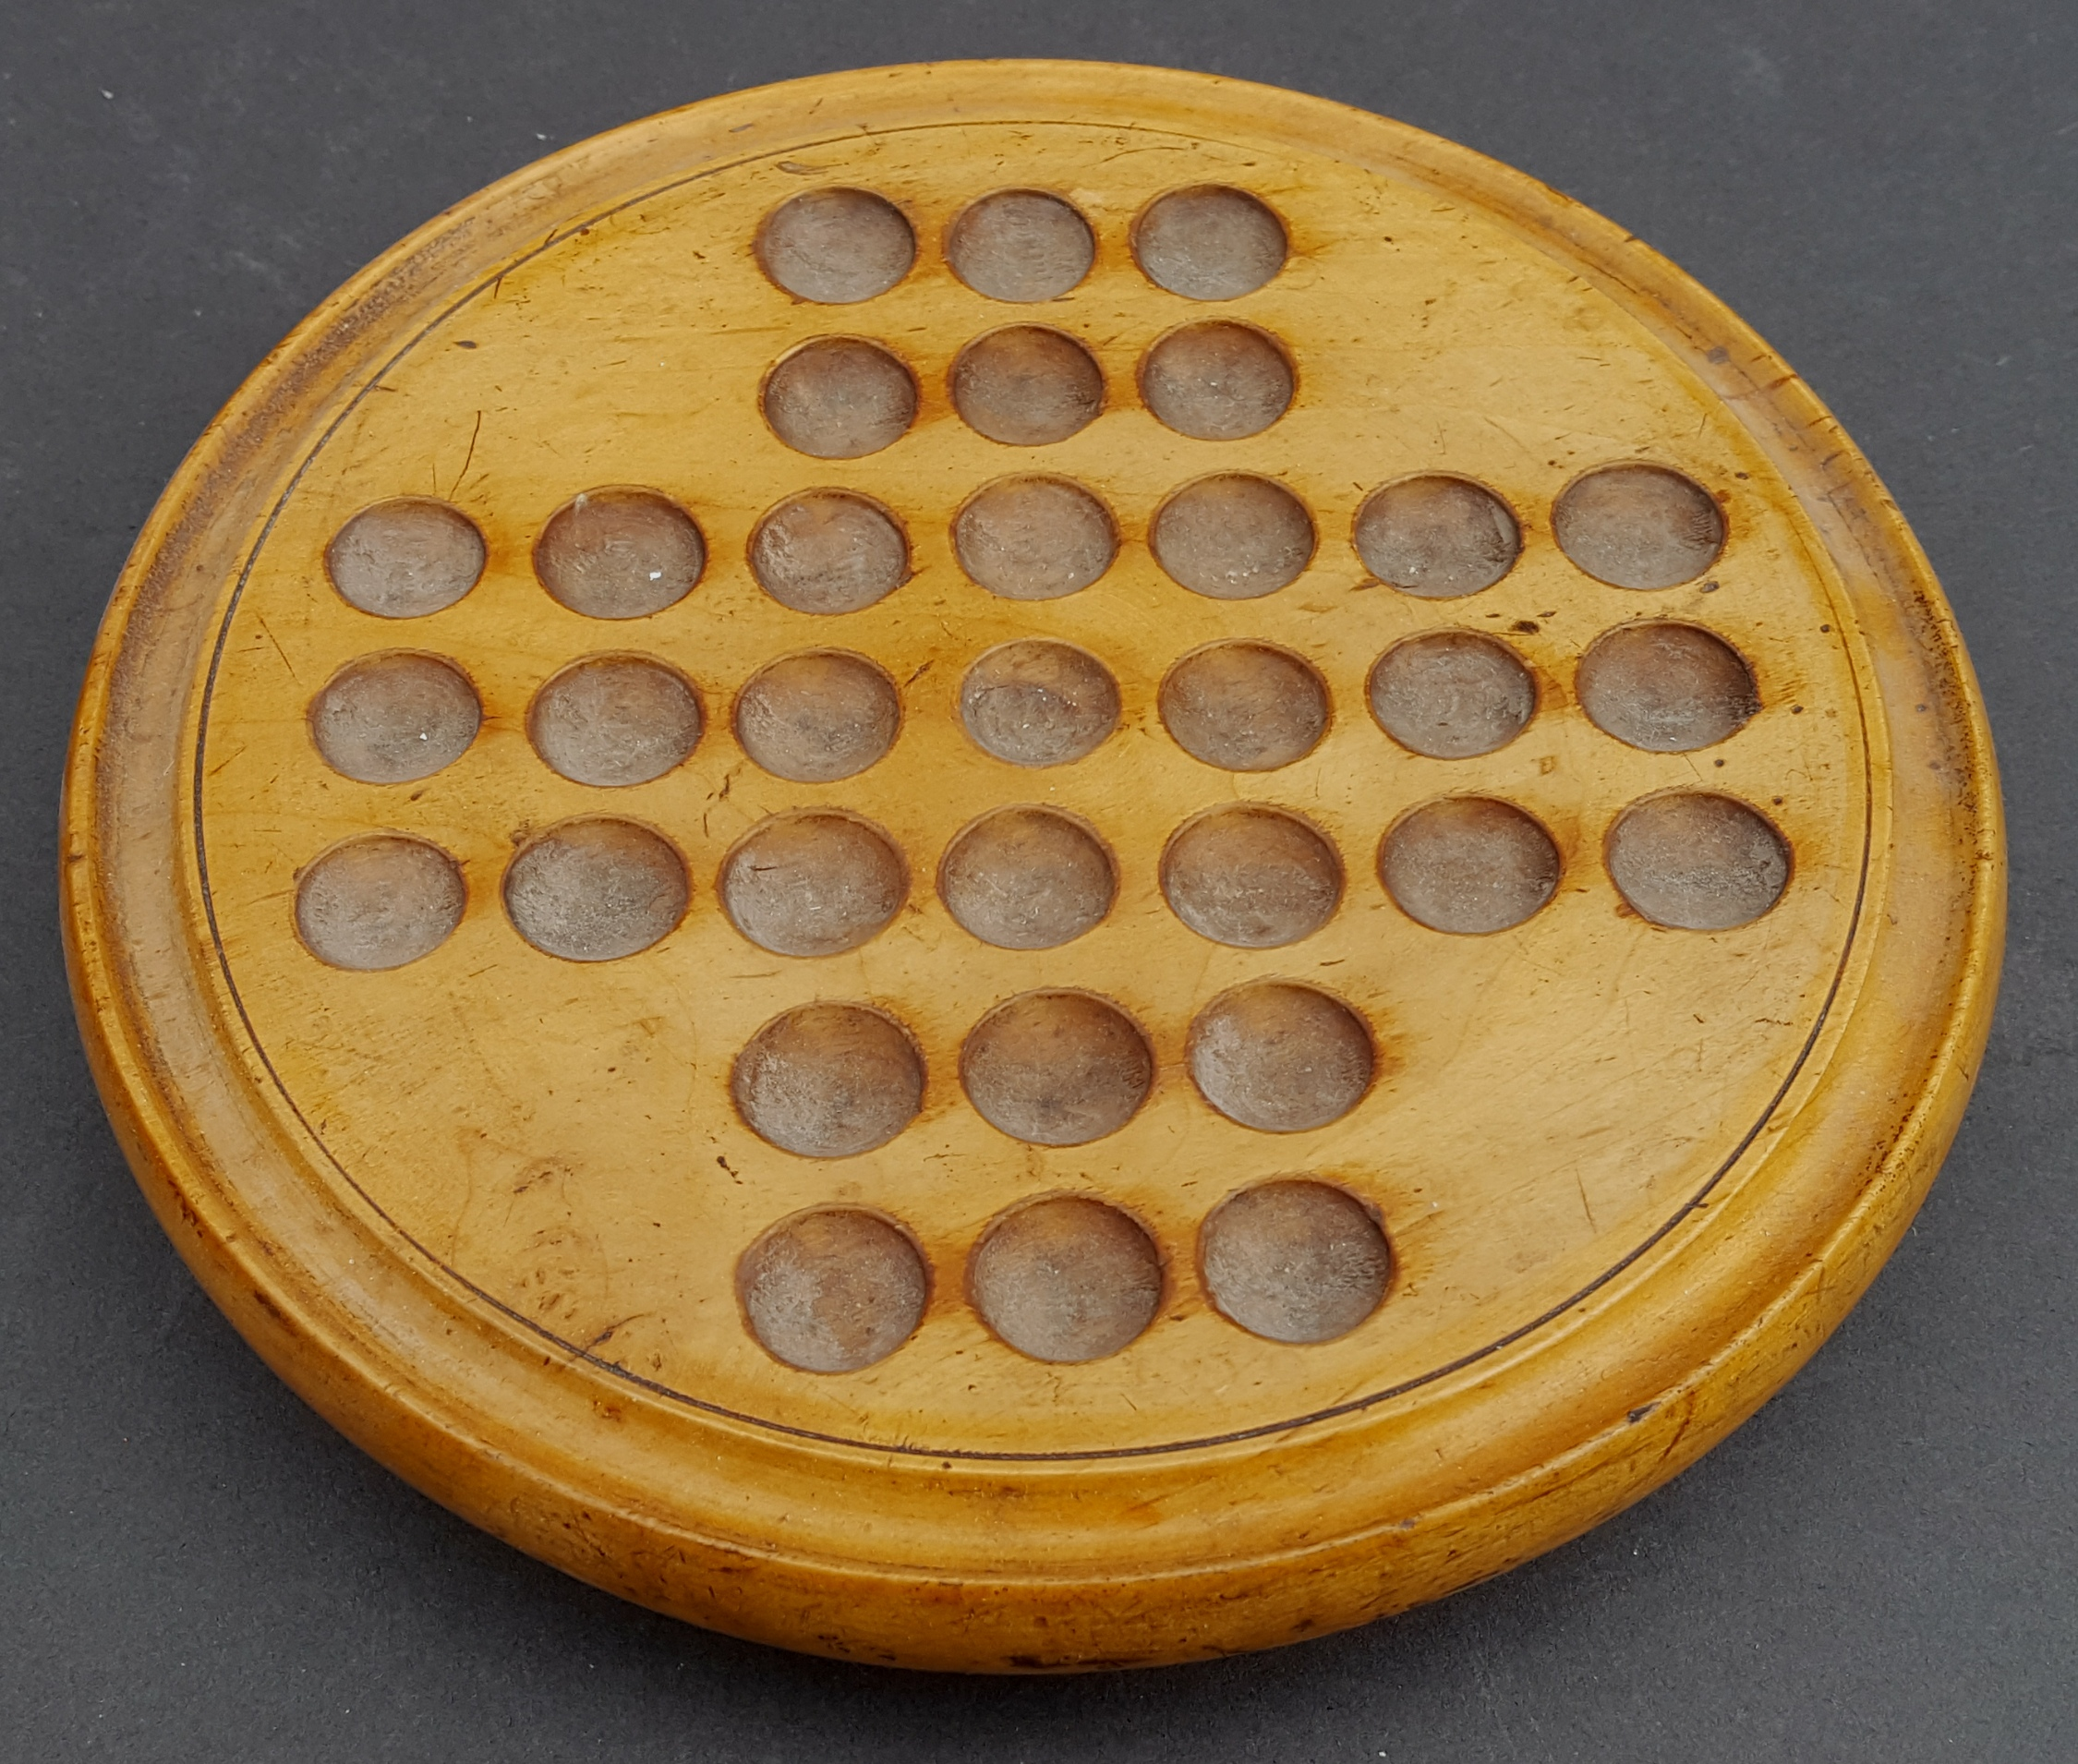 Lot 22 - Antique Vintage Wooden Solitaire Game With Original Marbles